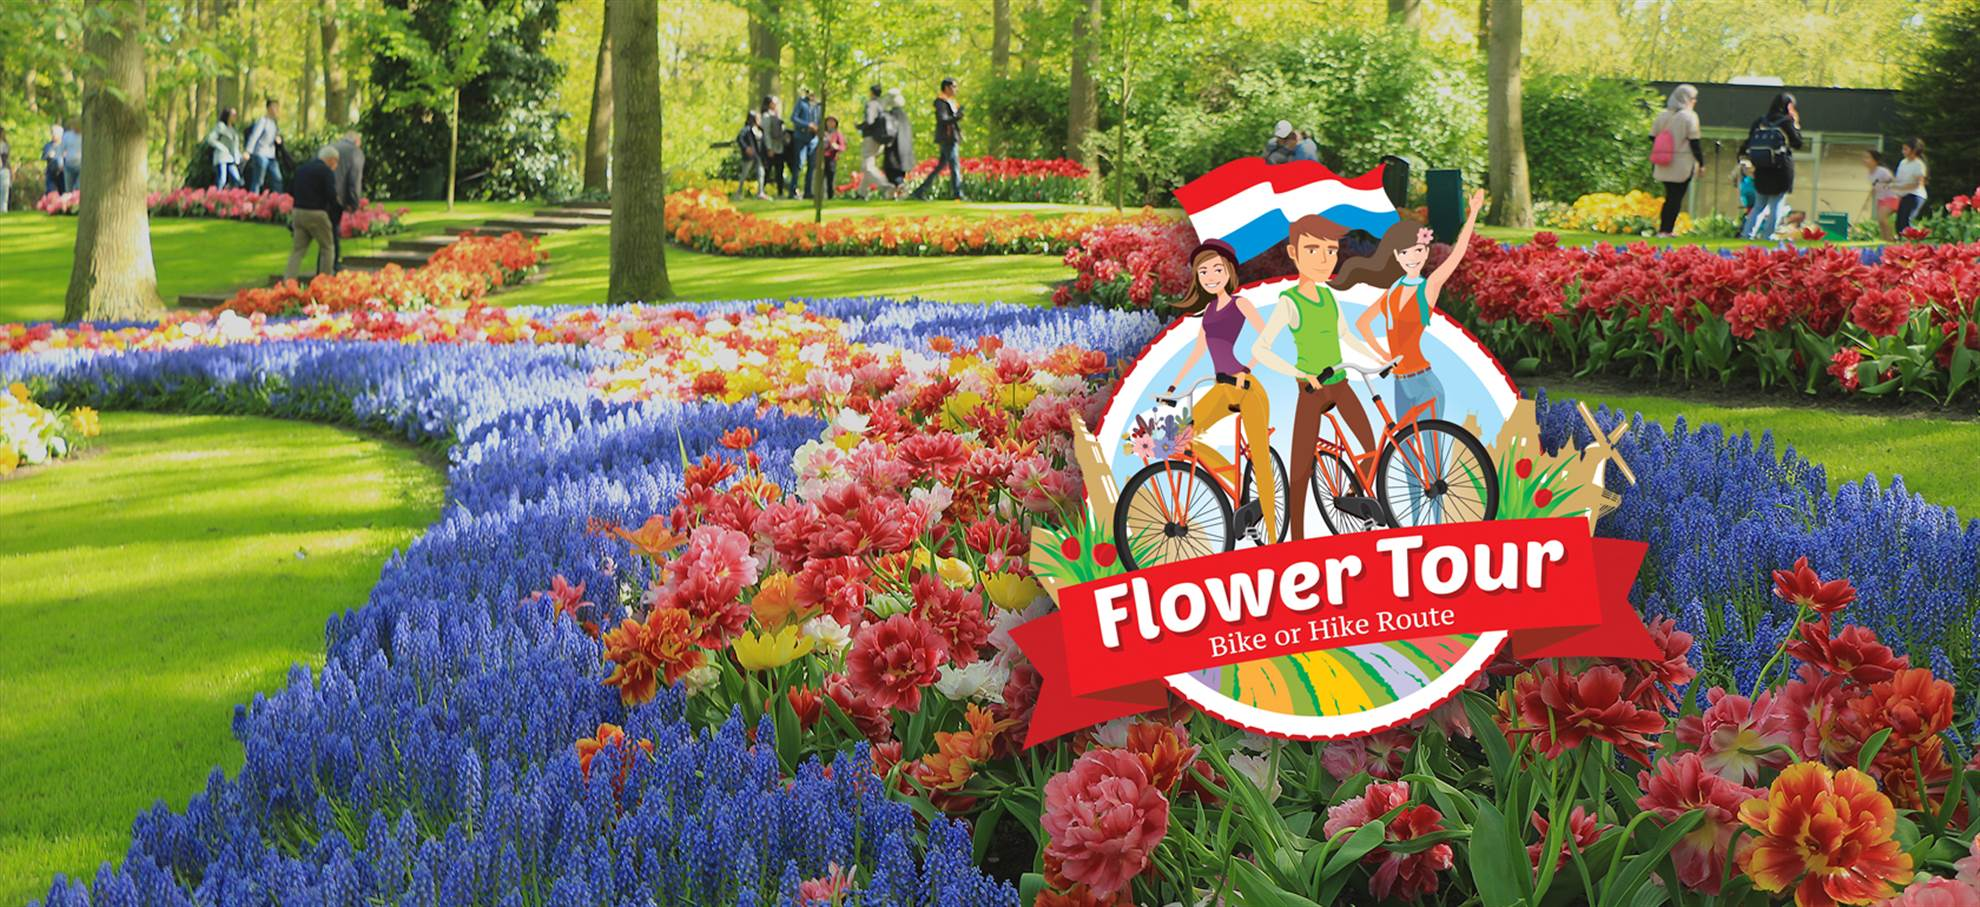 The Flower Tour: biking or hiking along the tulip fields